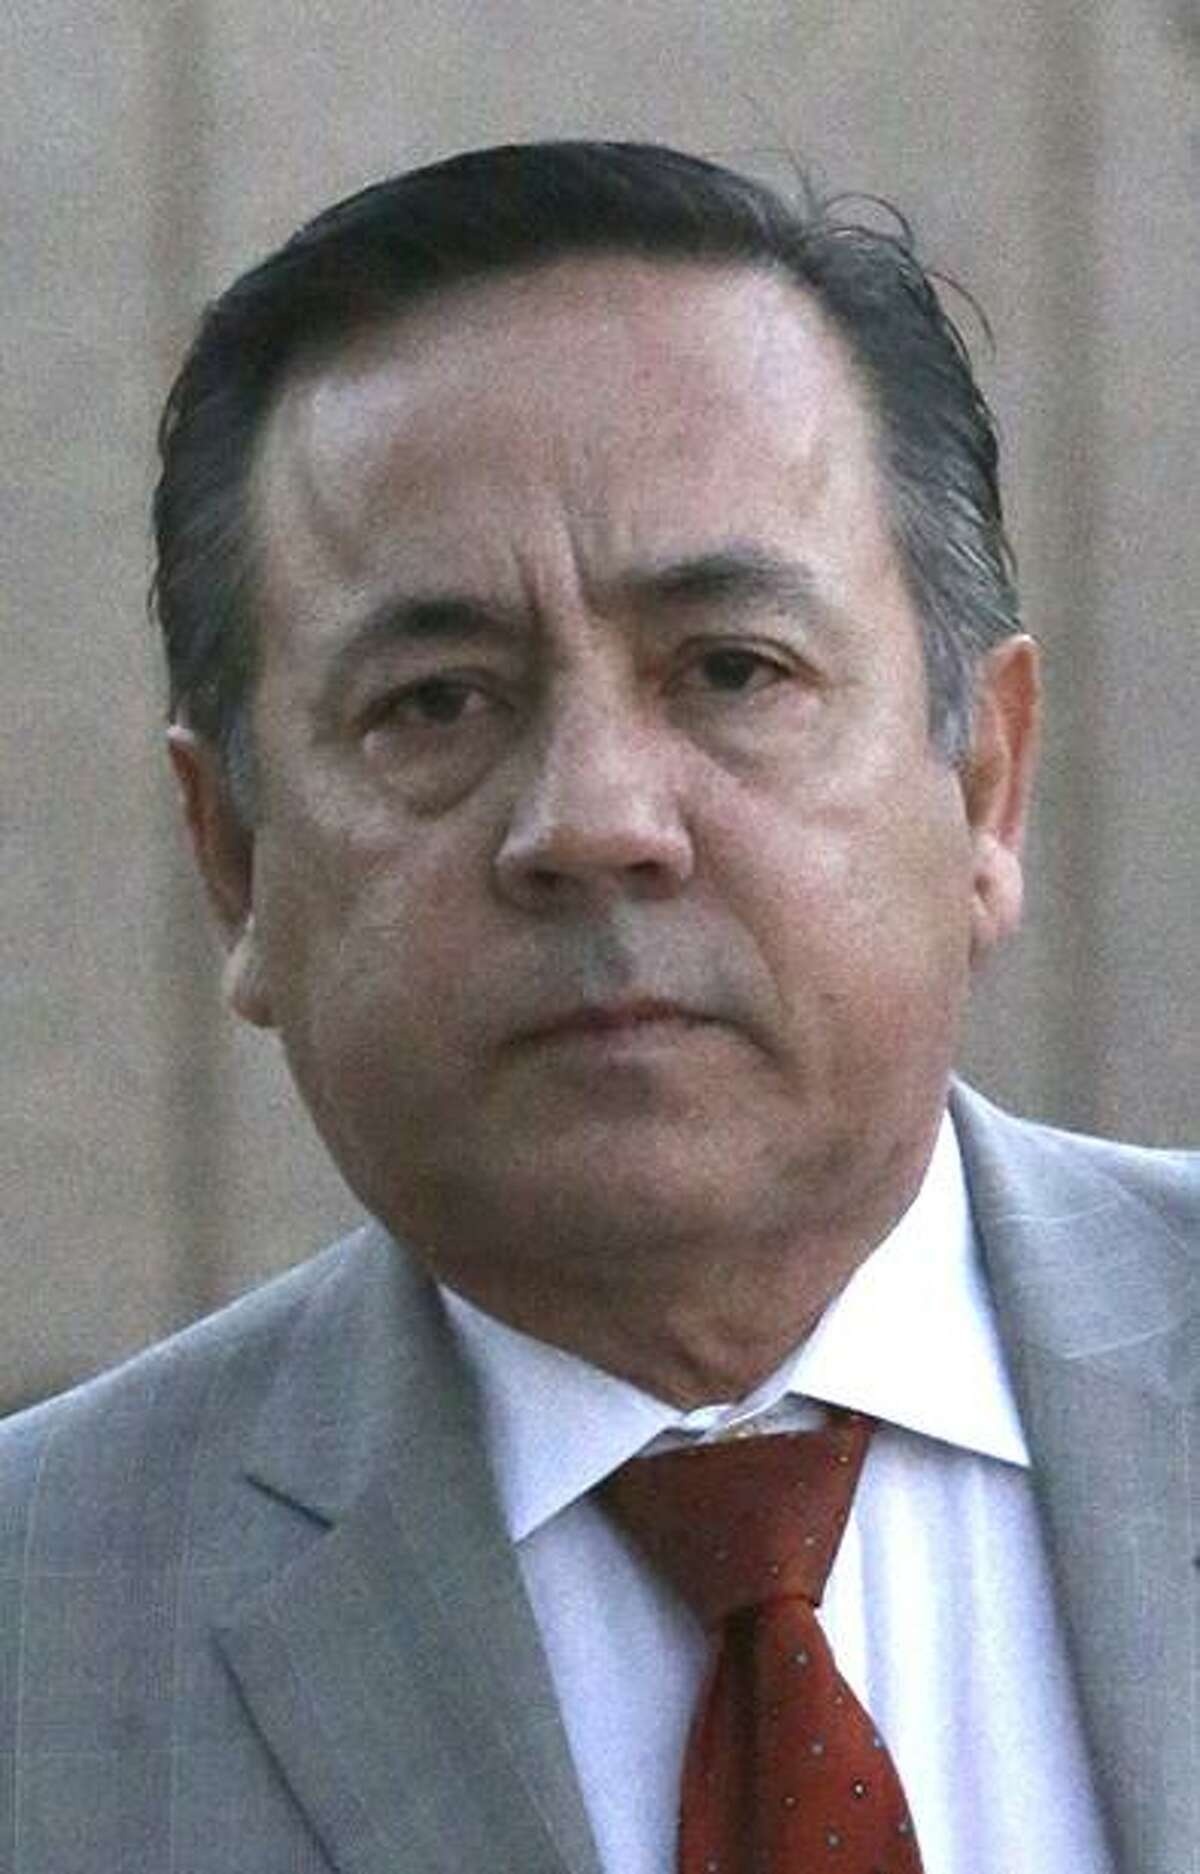 State Senator Carlos Uresti walks Monday morning January 8, 2018 to the John H. Wood, Jr. Federal Courthouse. Uresti is standing trial on charges relating to a bankrupt oil field services company.